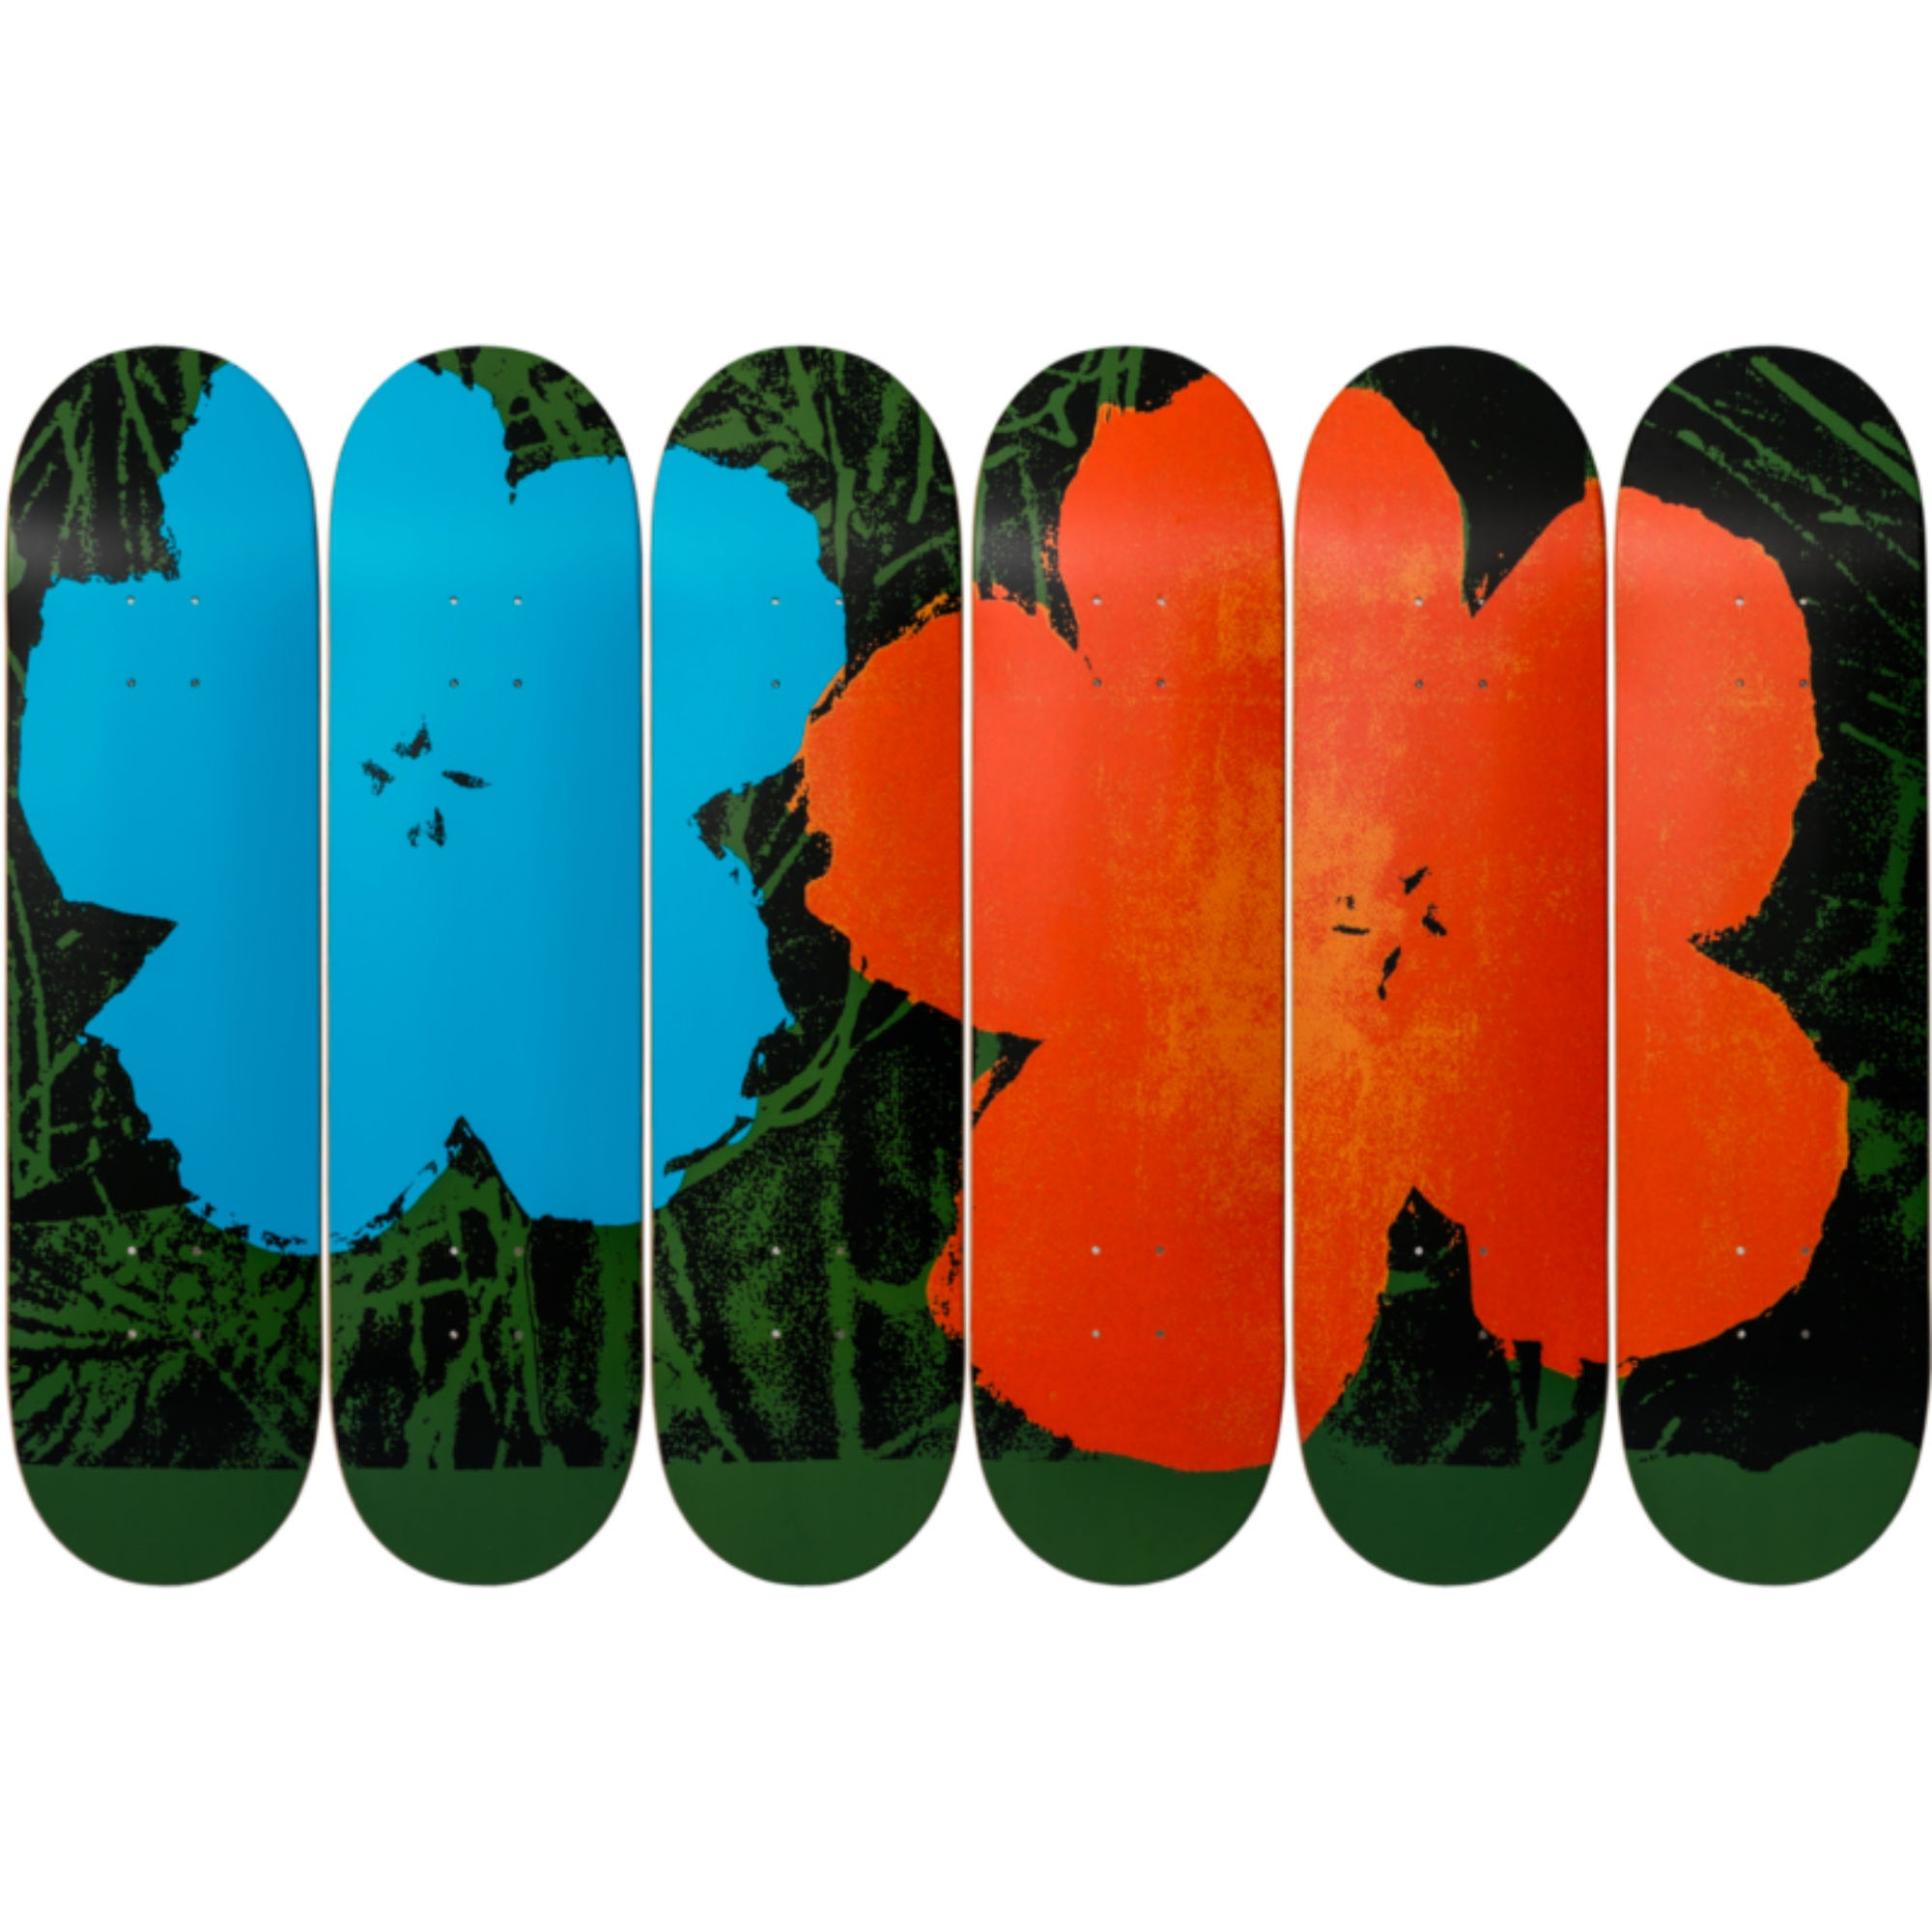 The Skateroom skateboard, Andy Warhol Flowers